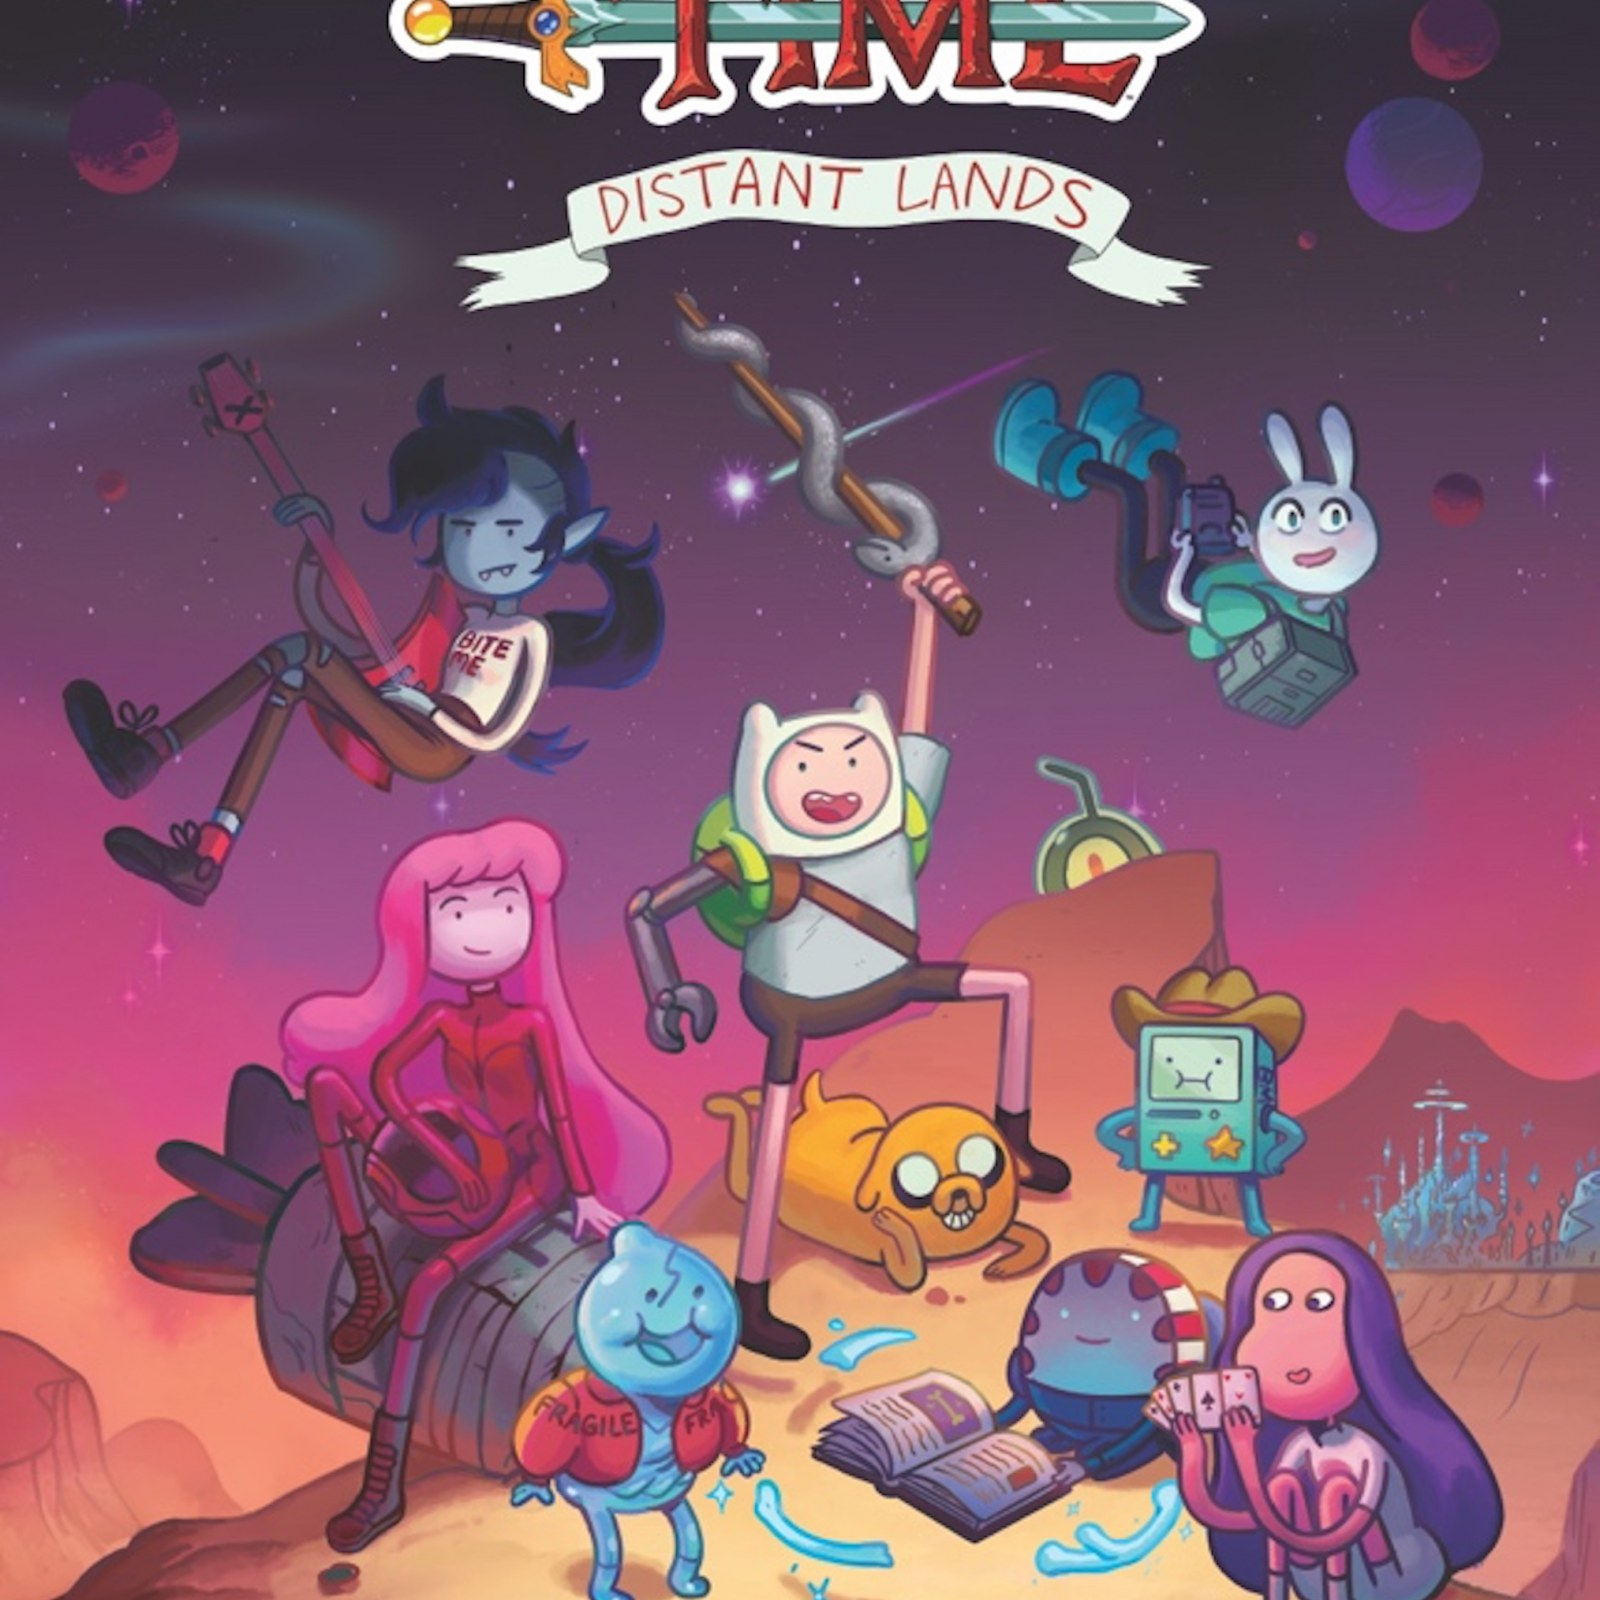 Adventure Time Returns For Distant Lands Episodes On Hbo Max With